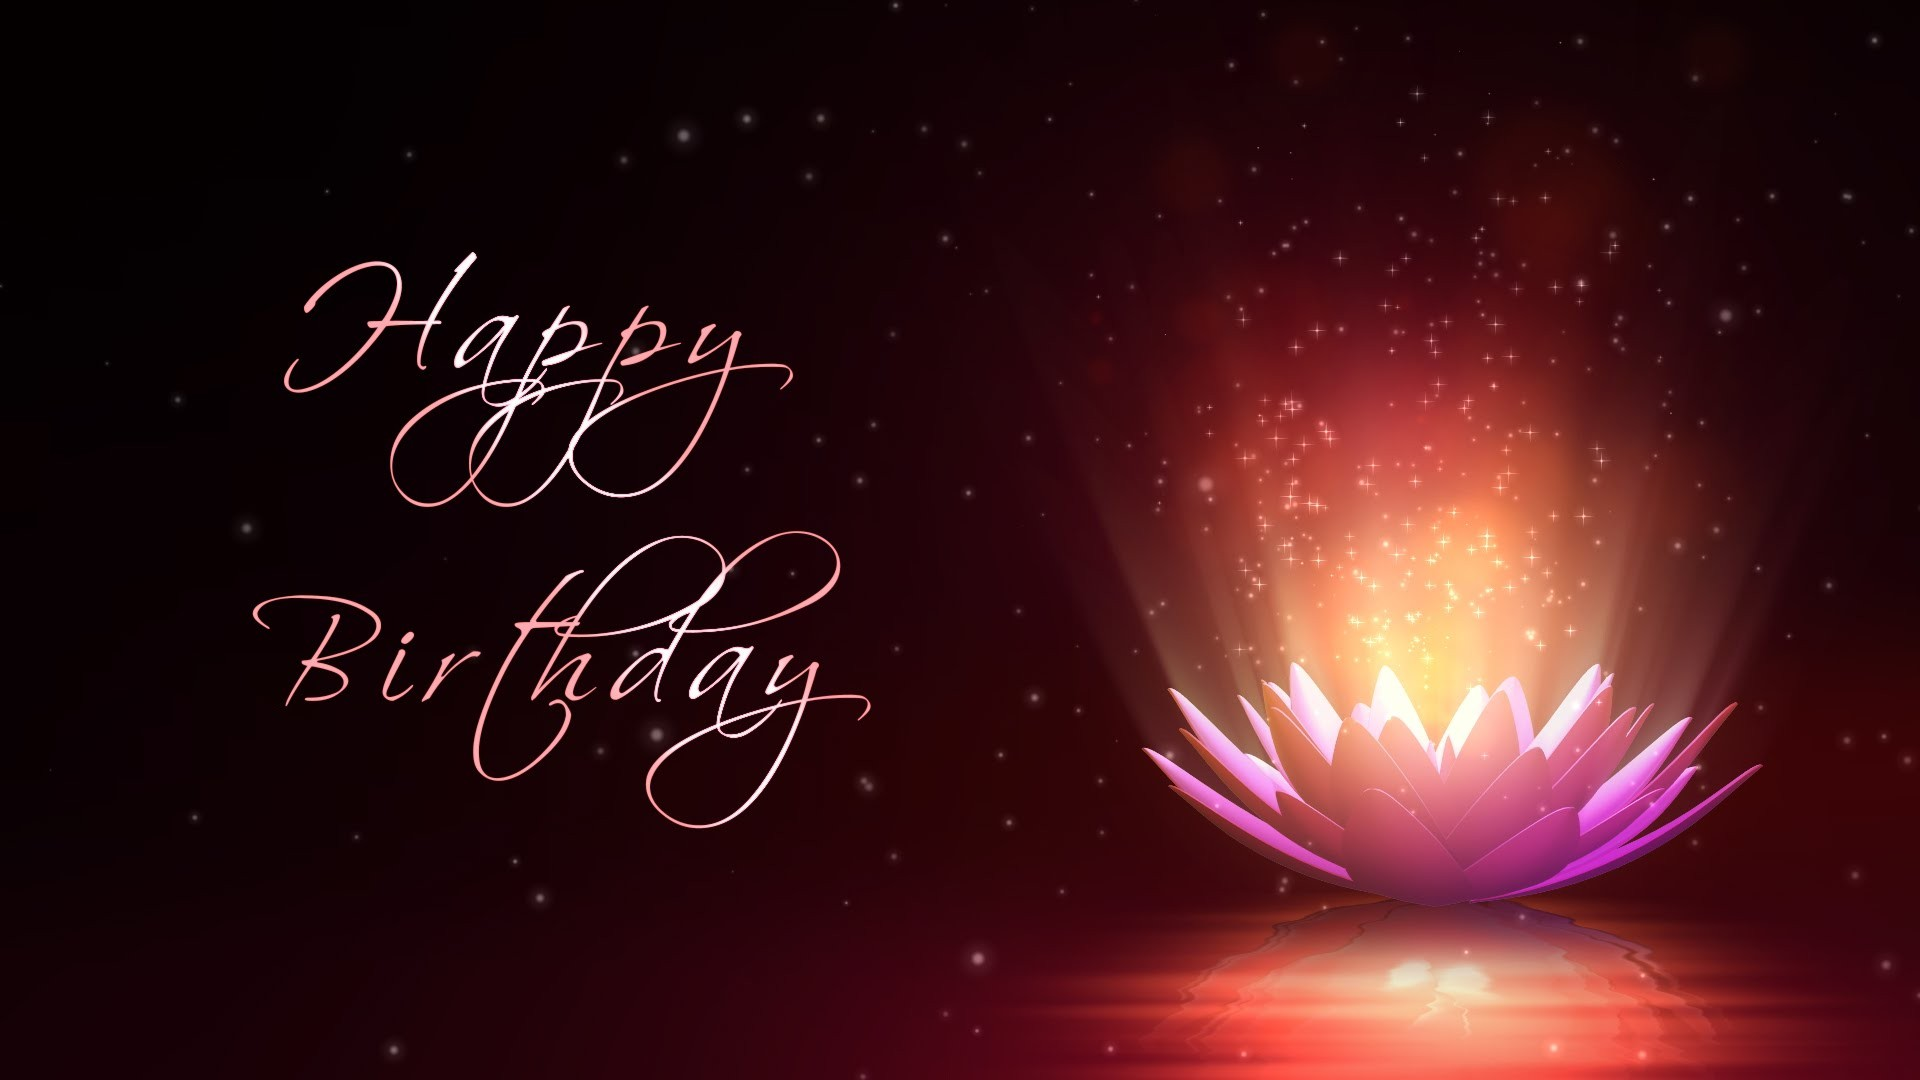 Happy birthday background download free stunning for Geburtstagsbilder 18